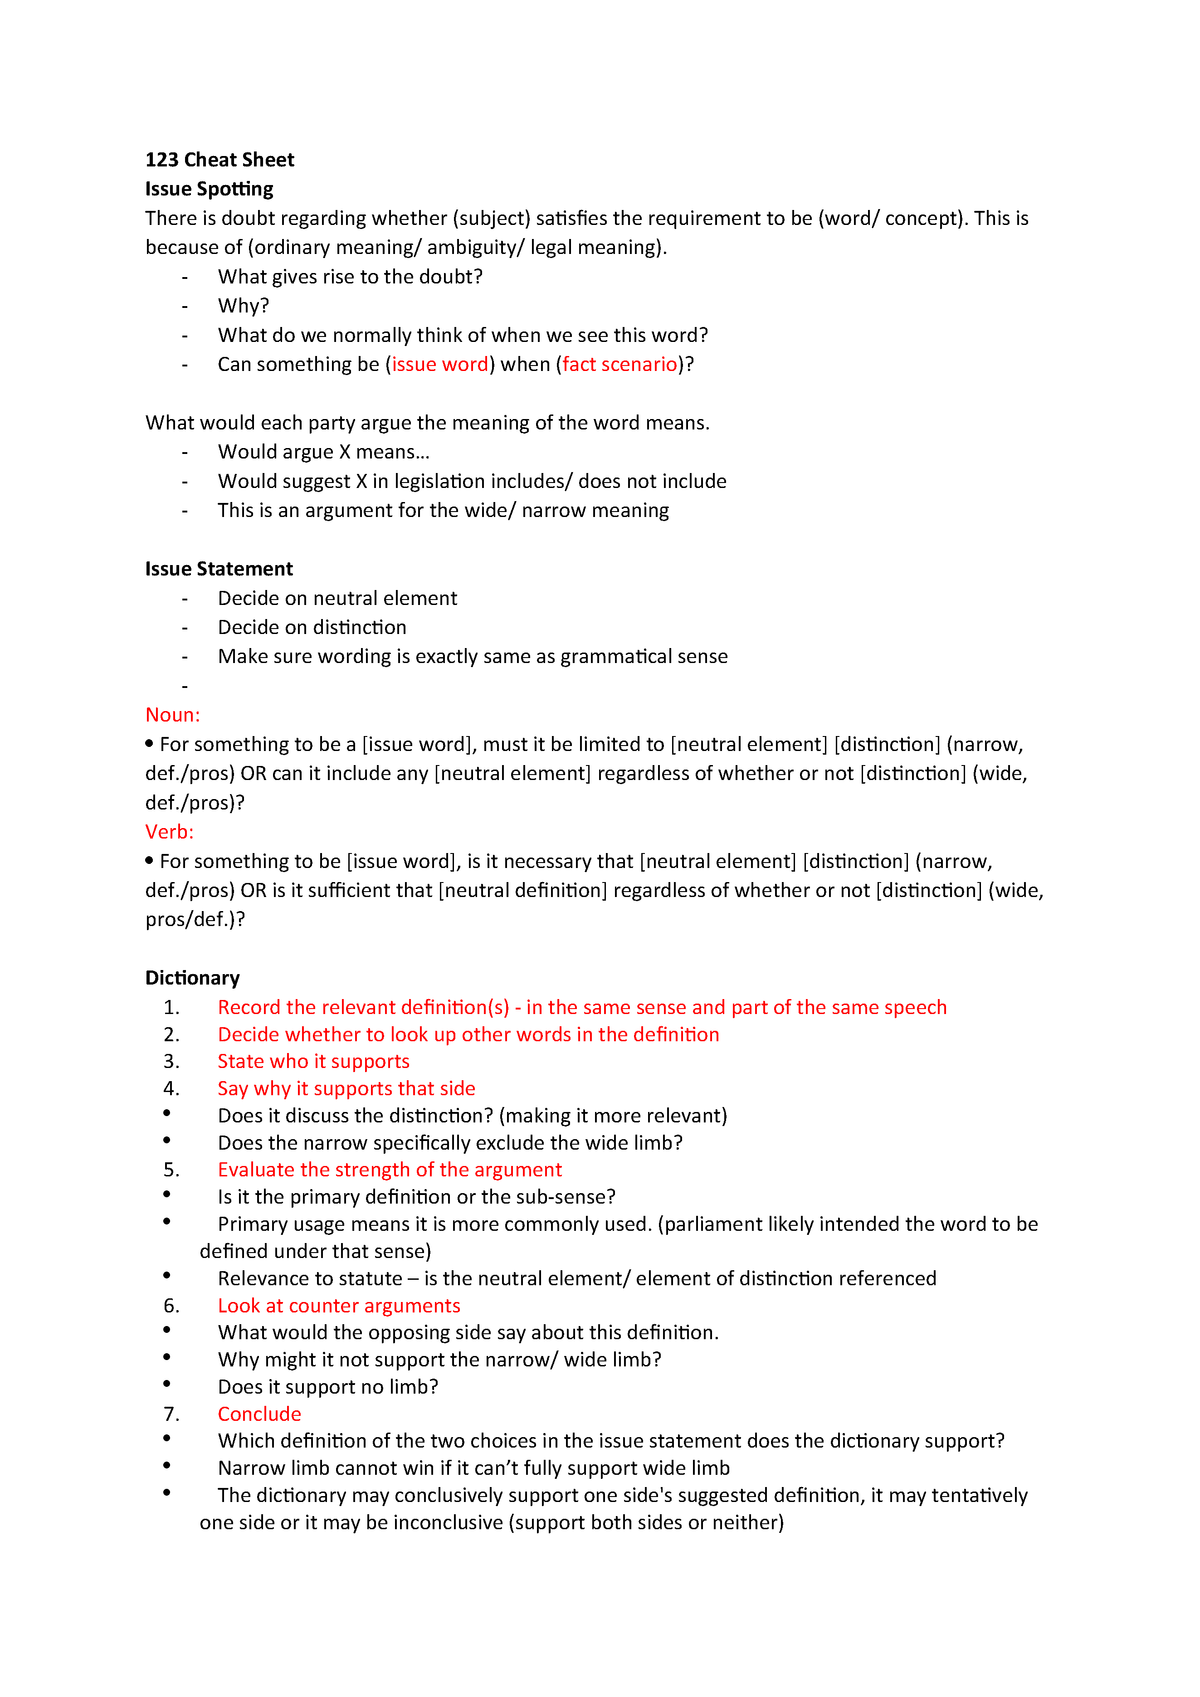 123 Cheat Sheet - Introduction to Statute Law LAWS123 - StuDocu